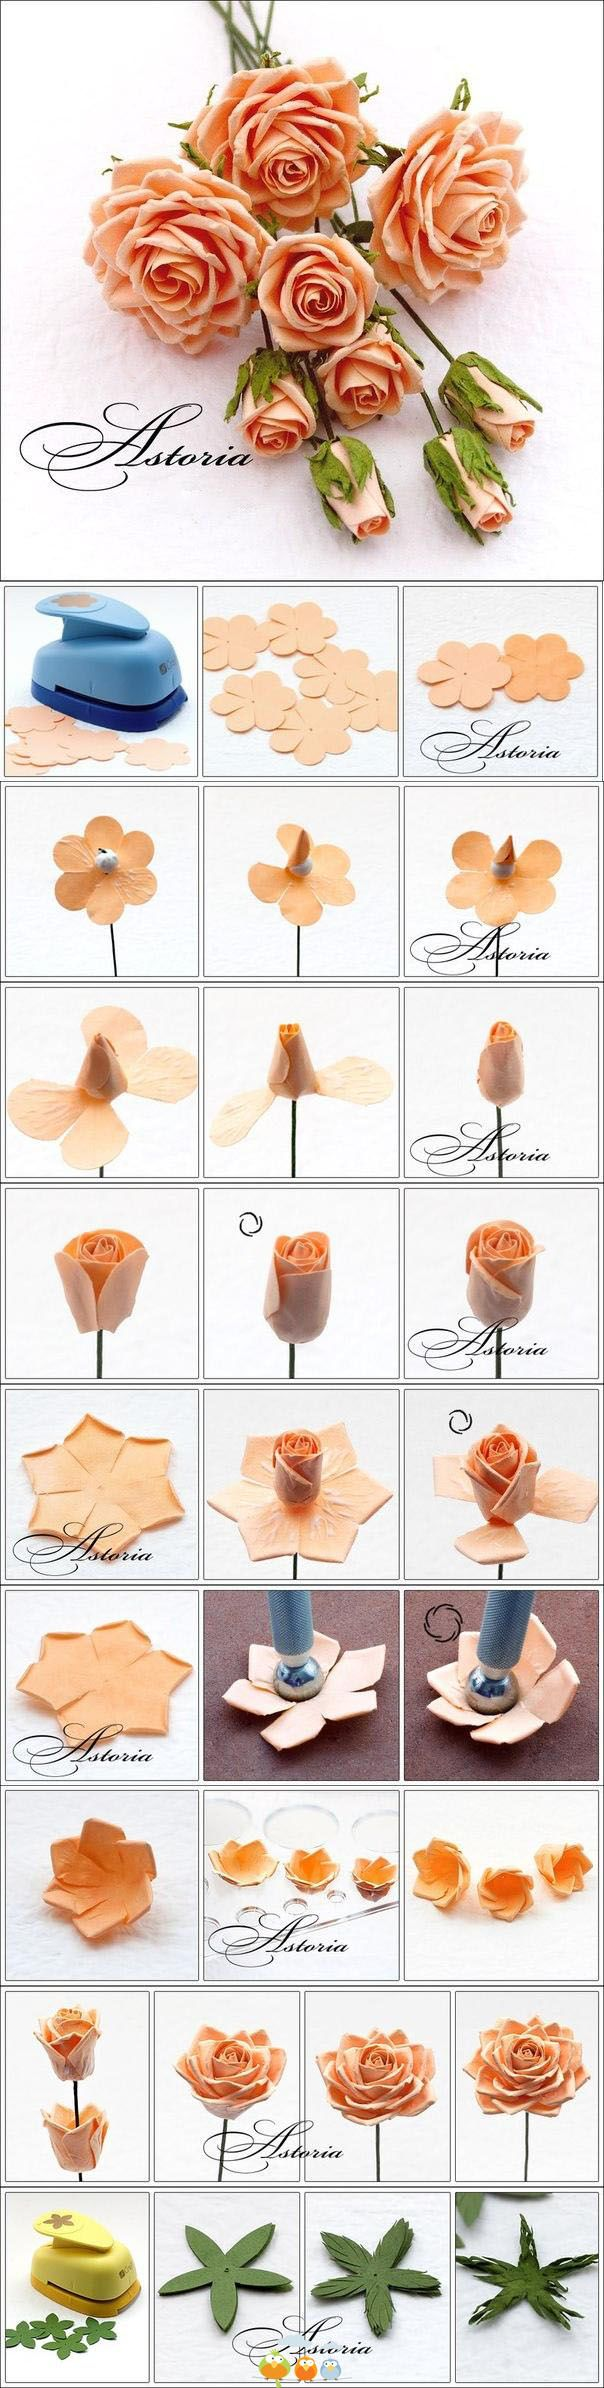 DIY Paper Flowers#roses# bouquet#crafts#home made#easy#idea#do it yourself#project #handmade#cool#gift#decor#wedding favour# +++LINDAS FLORES DE PAPEL ROSAS RAMO MANUALIDAD REGALO DECORACION